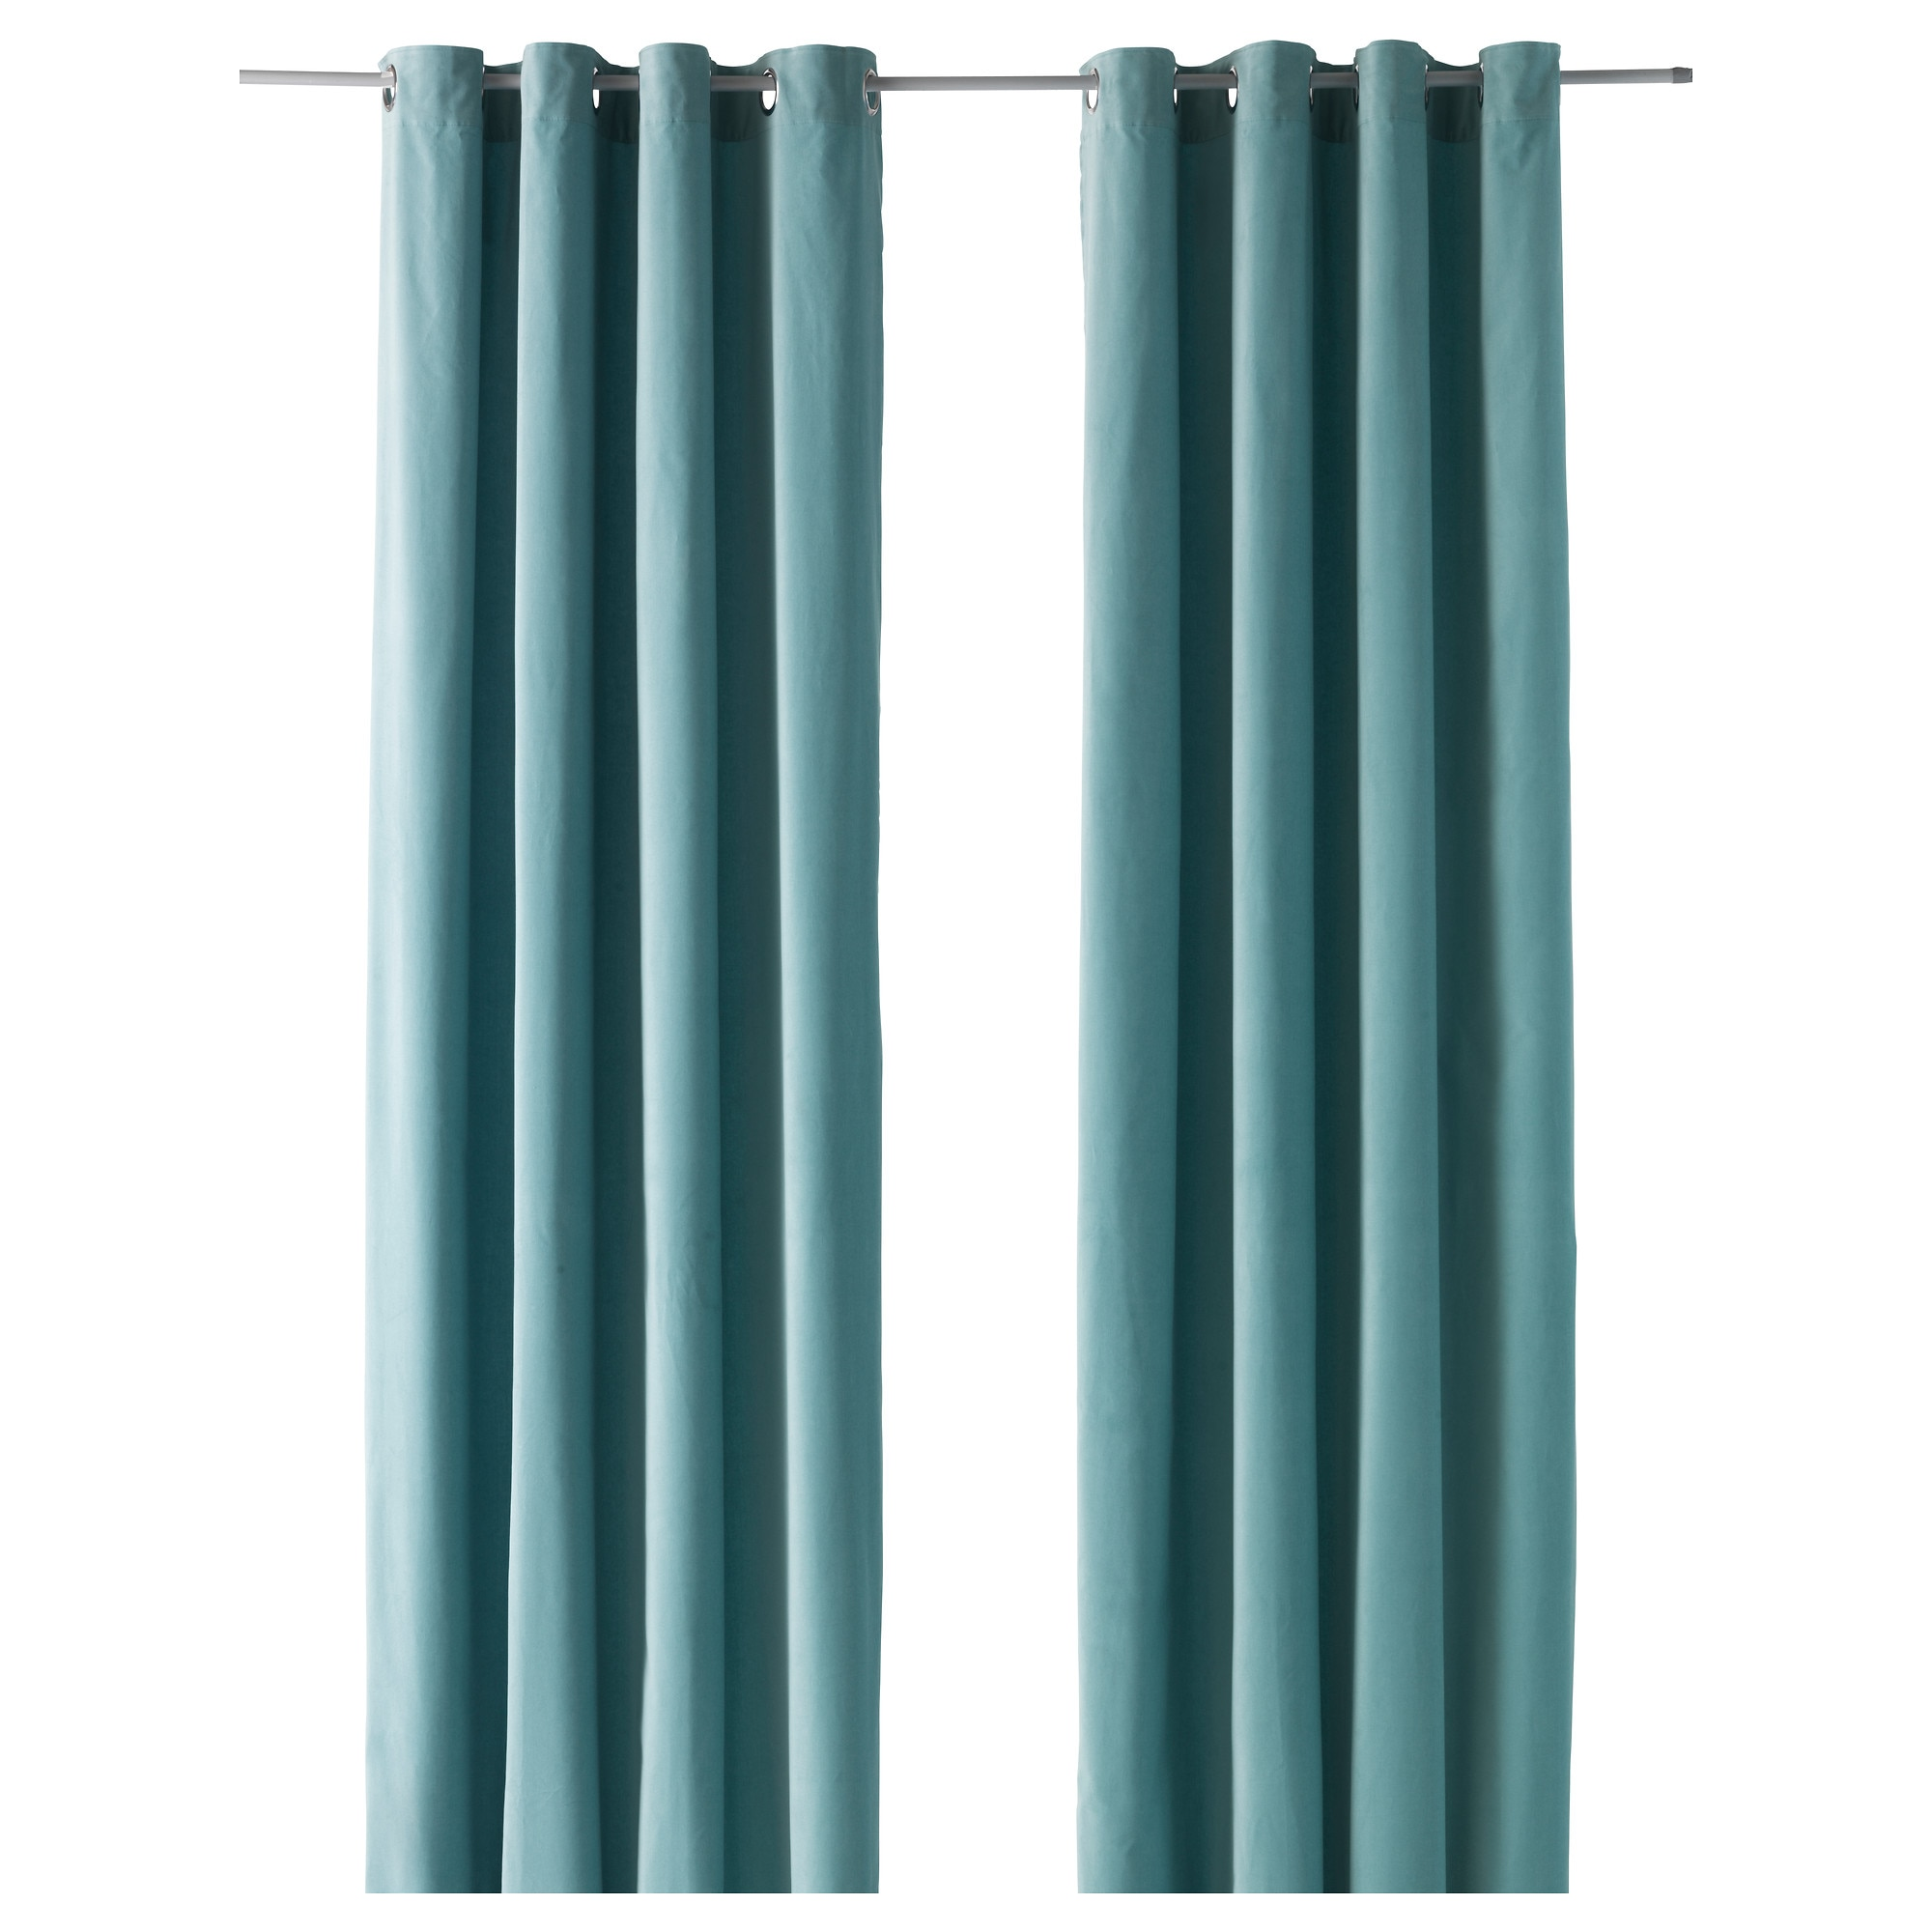 Blue Curtains Living Room Curtains, 1 pair